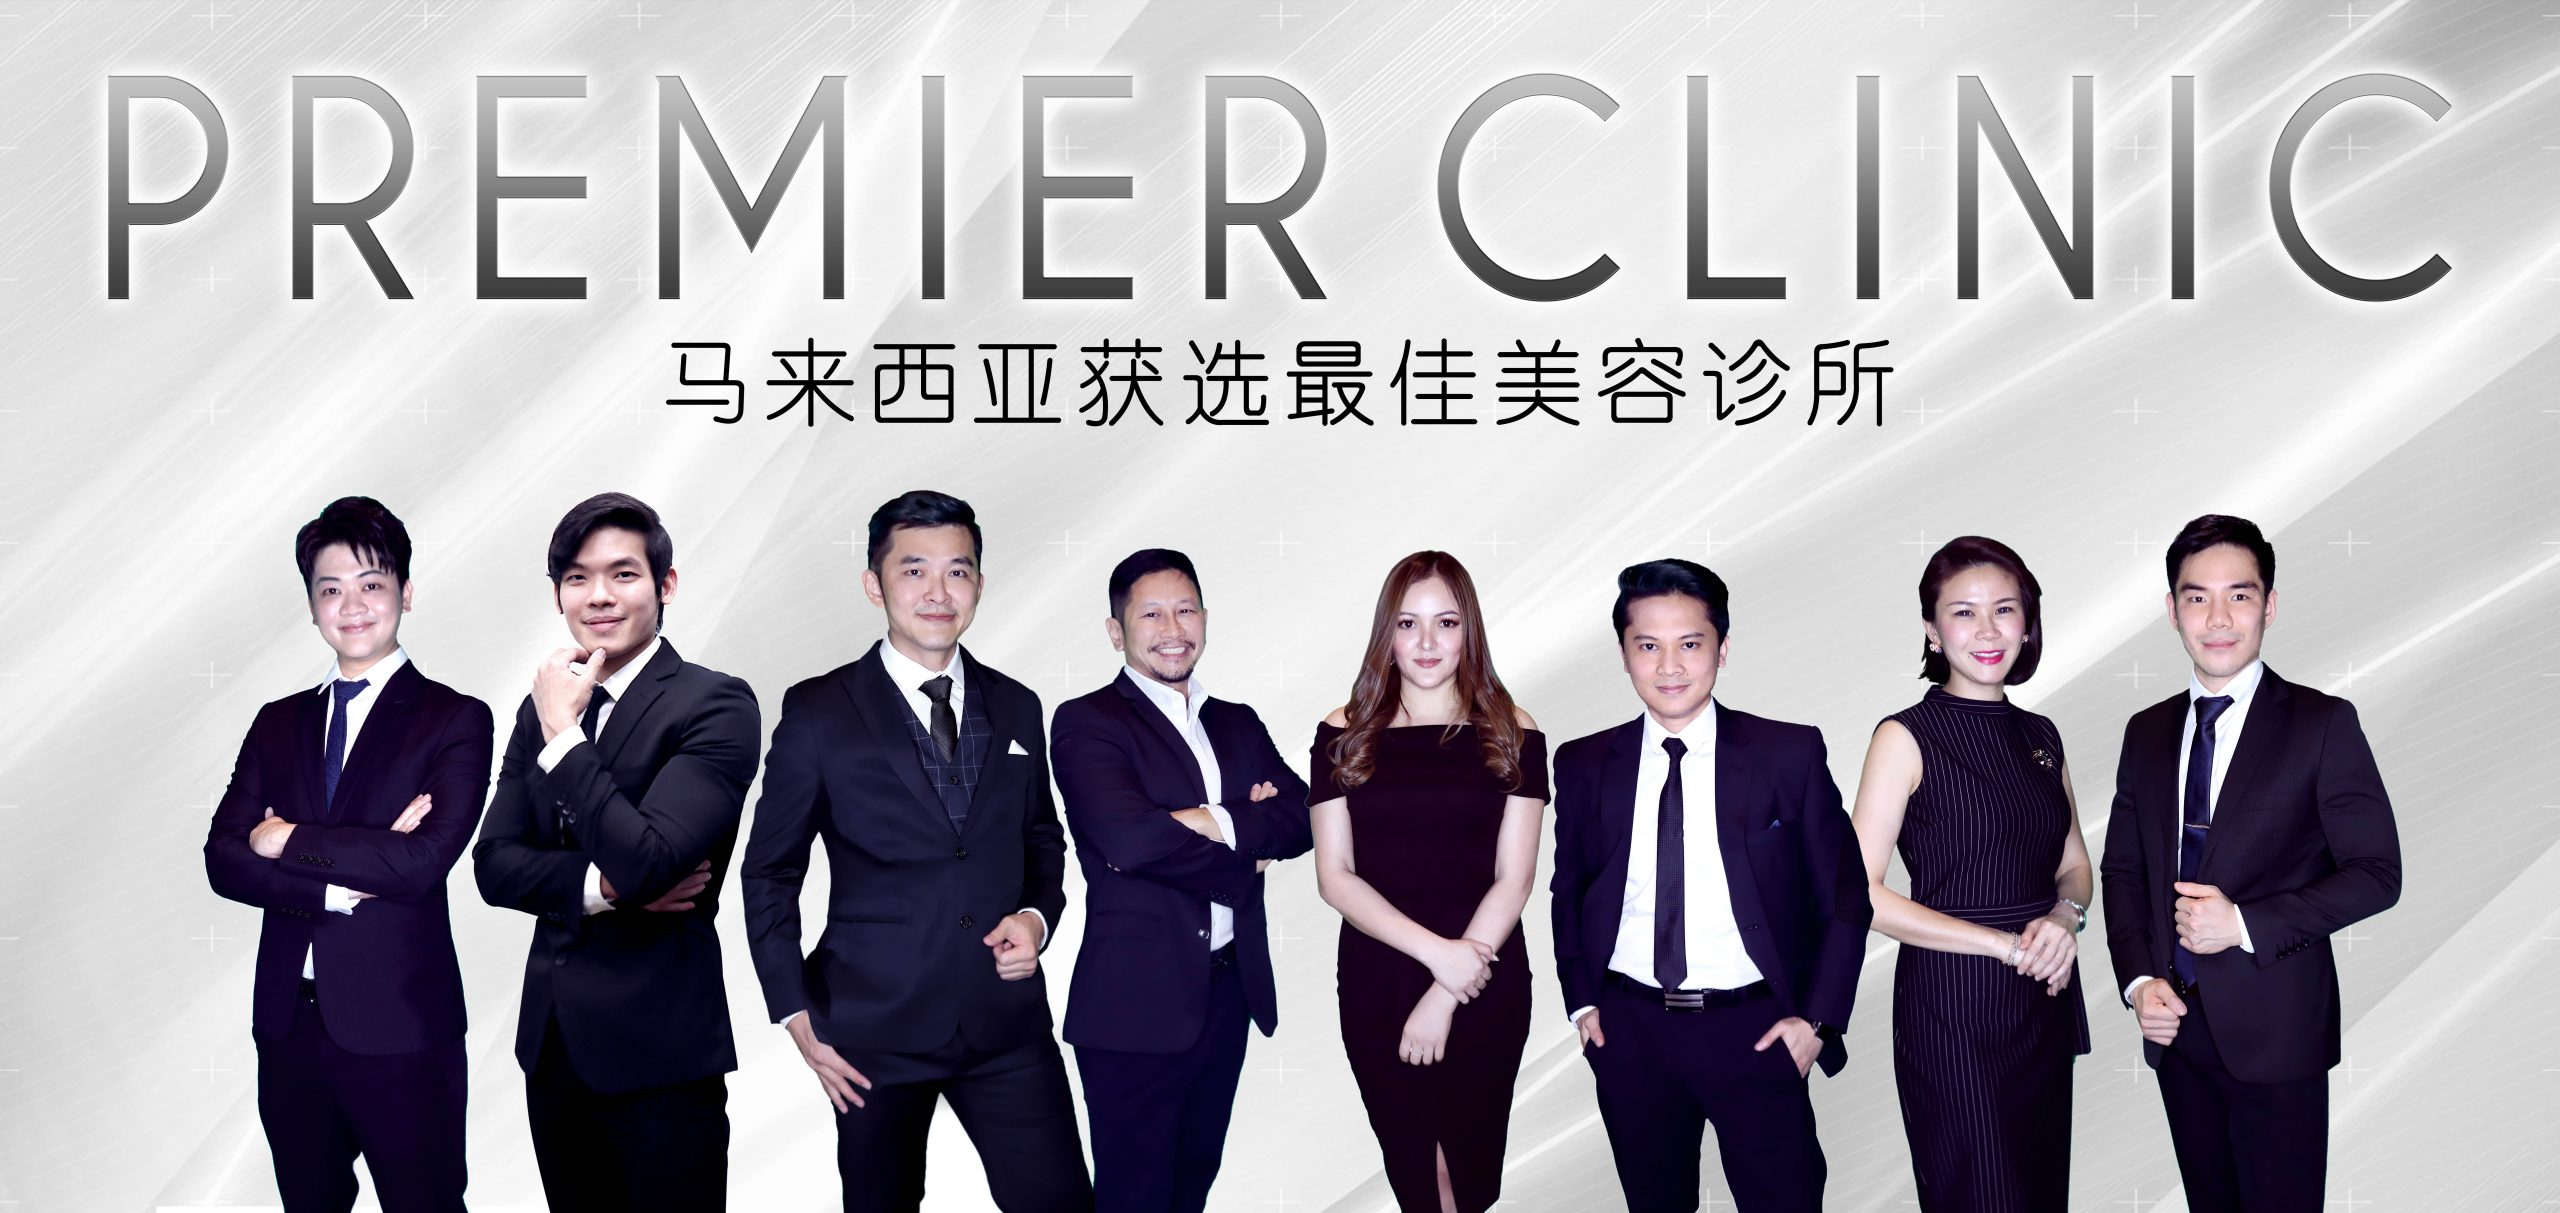 Premier Clinic Website Doctor Group Photo